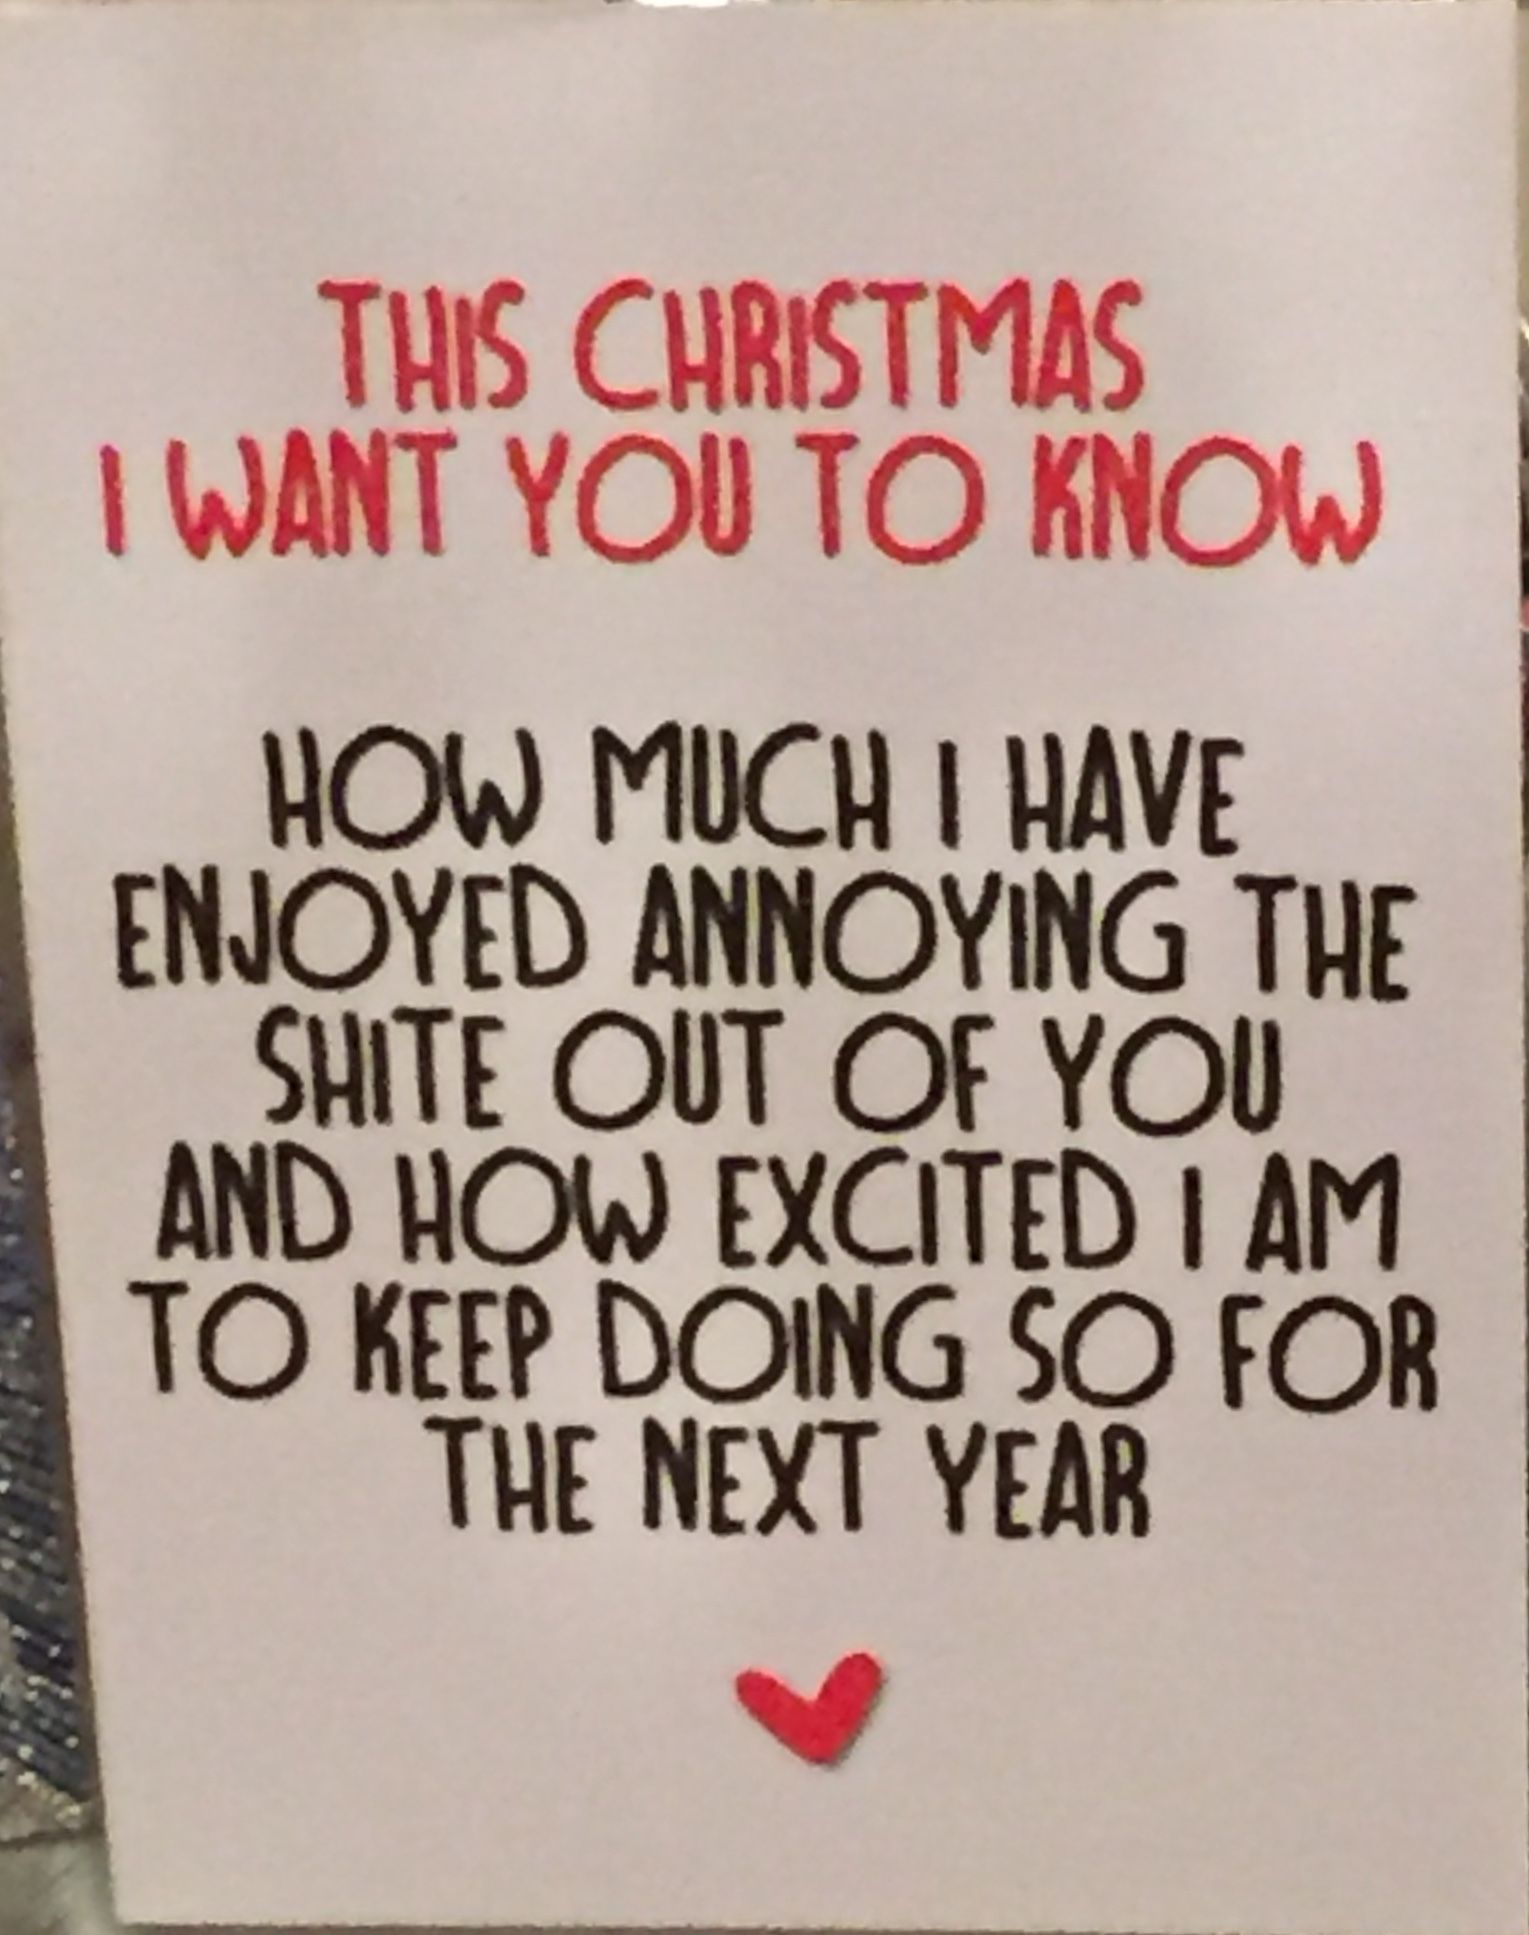 My card to my better half this year, good job she loves me